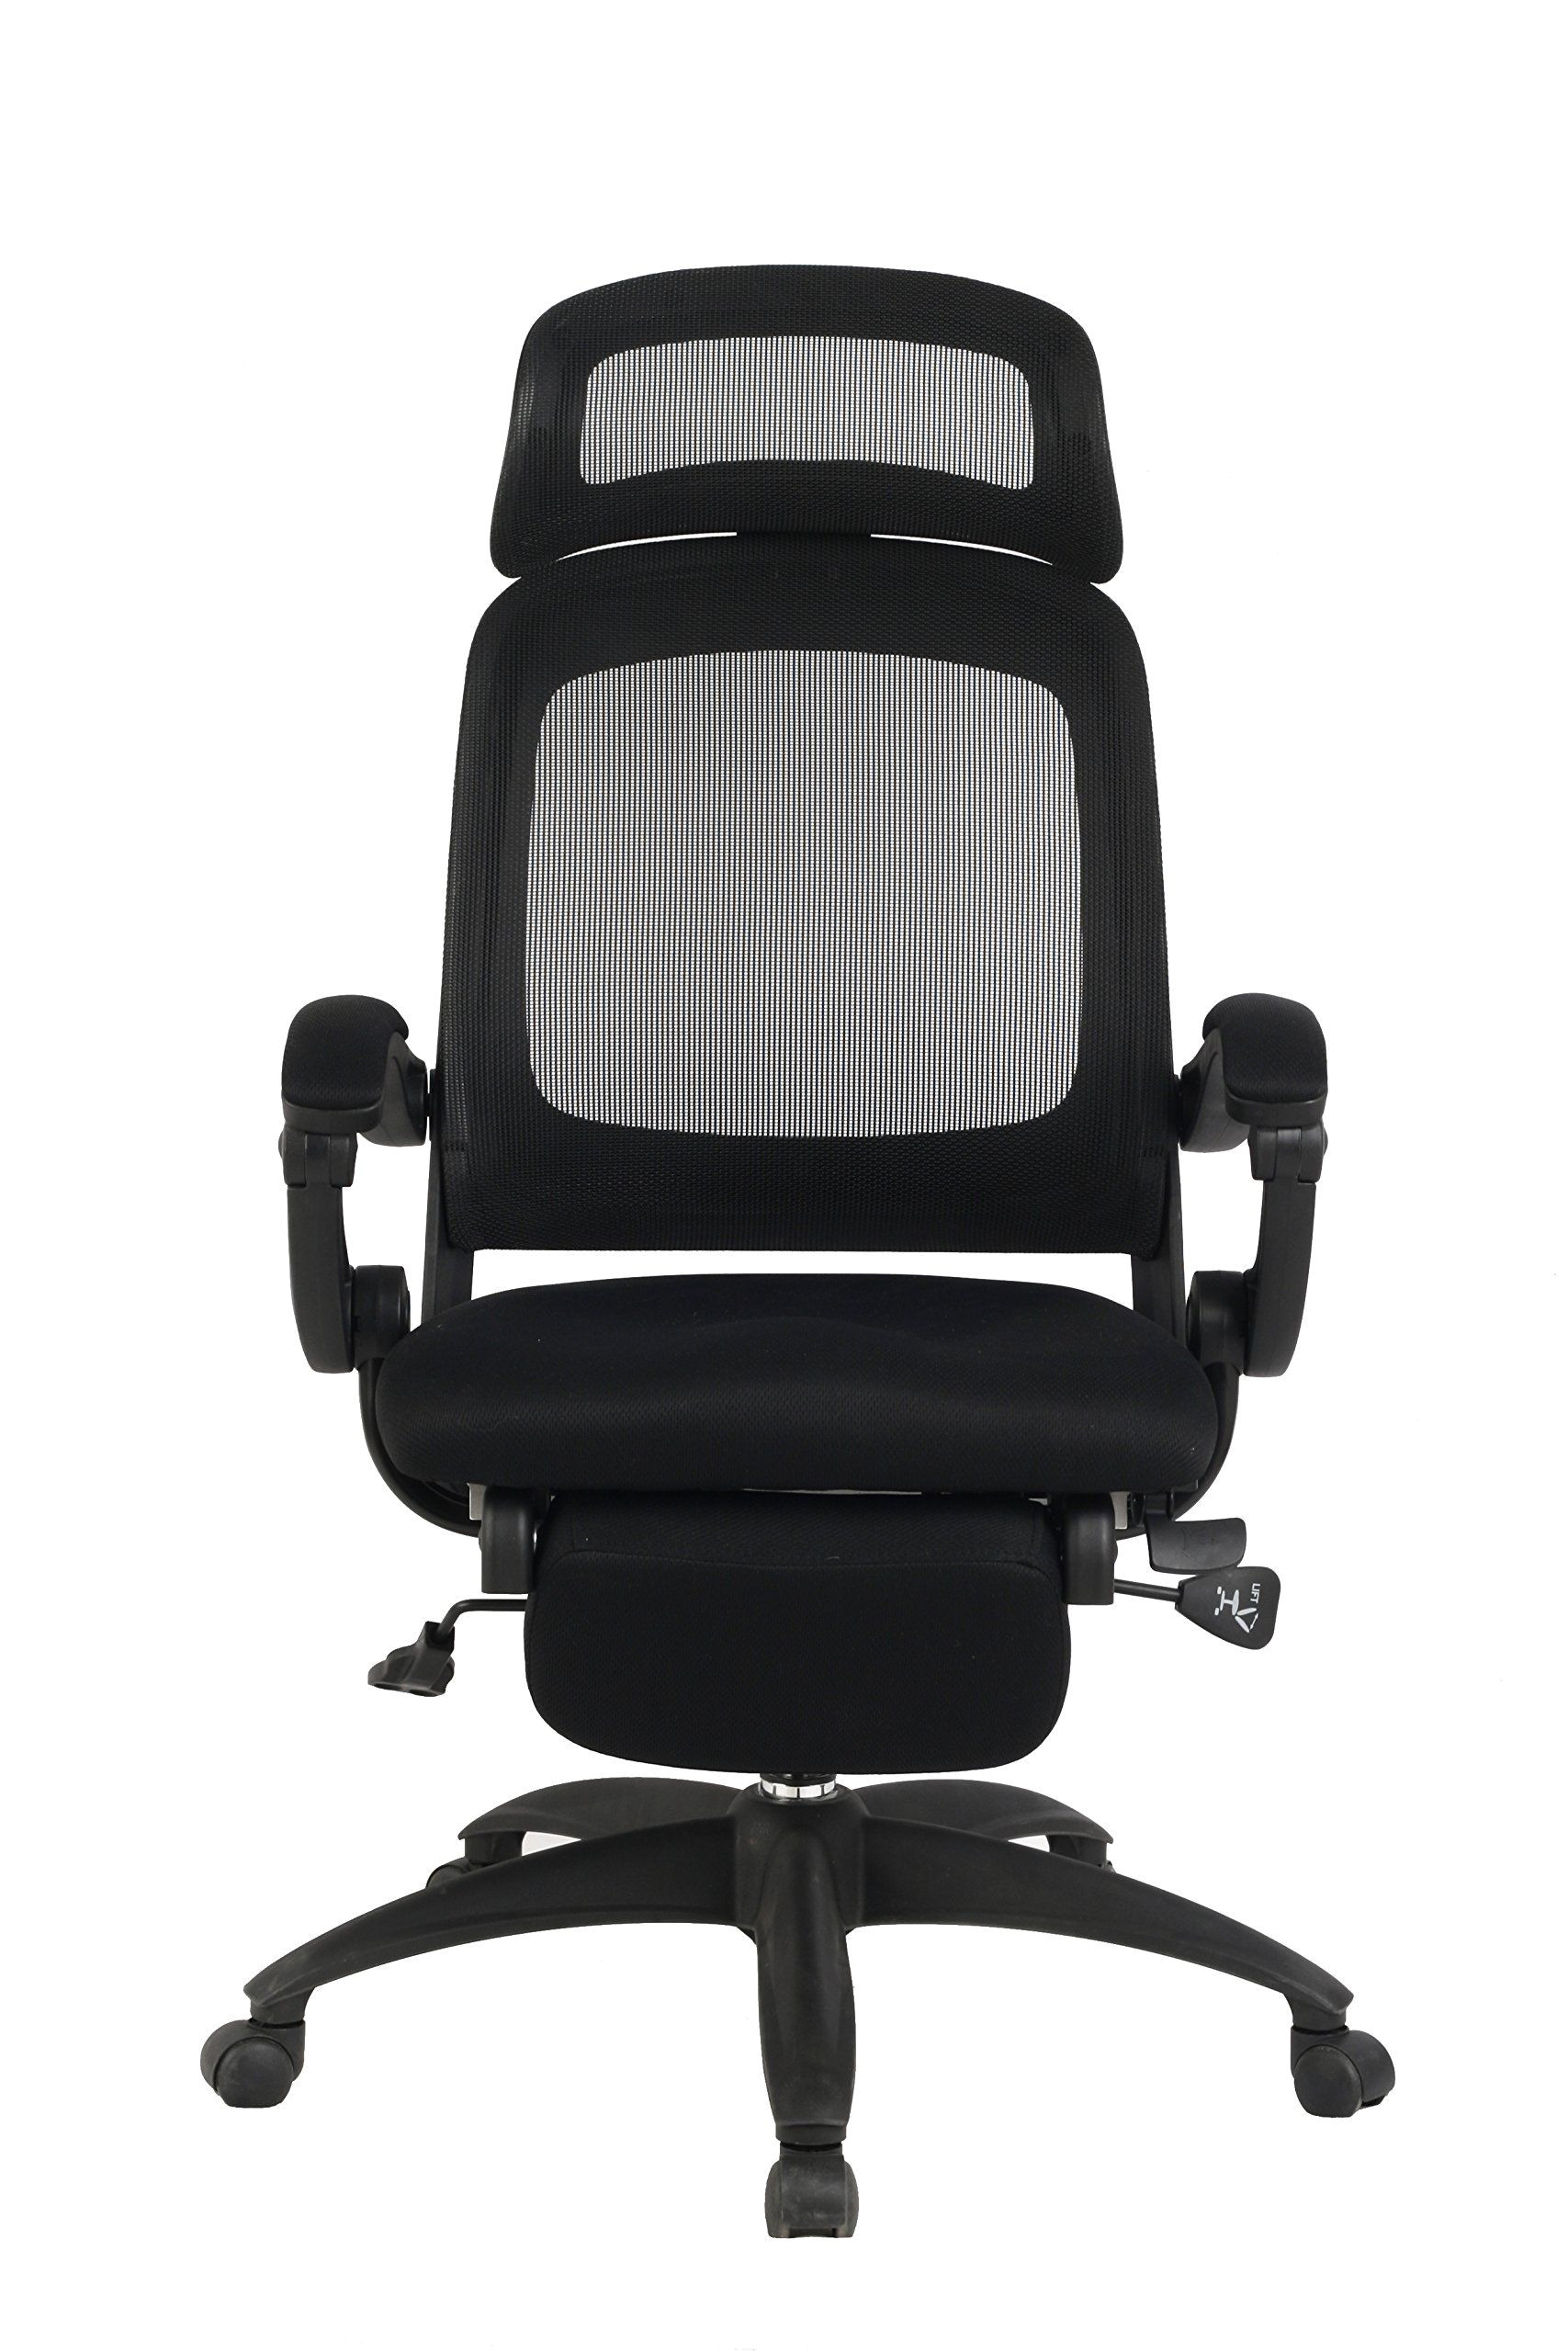 recliner office chair executive high back mesh office gaming chair with footrest be sure to check out this awesome product affiliate link